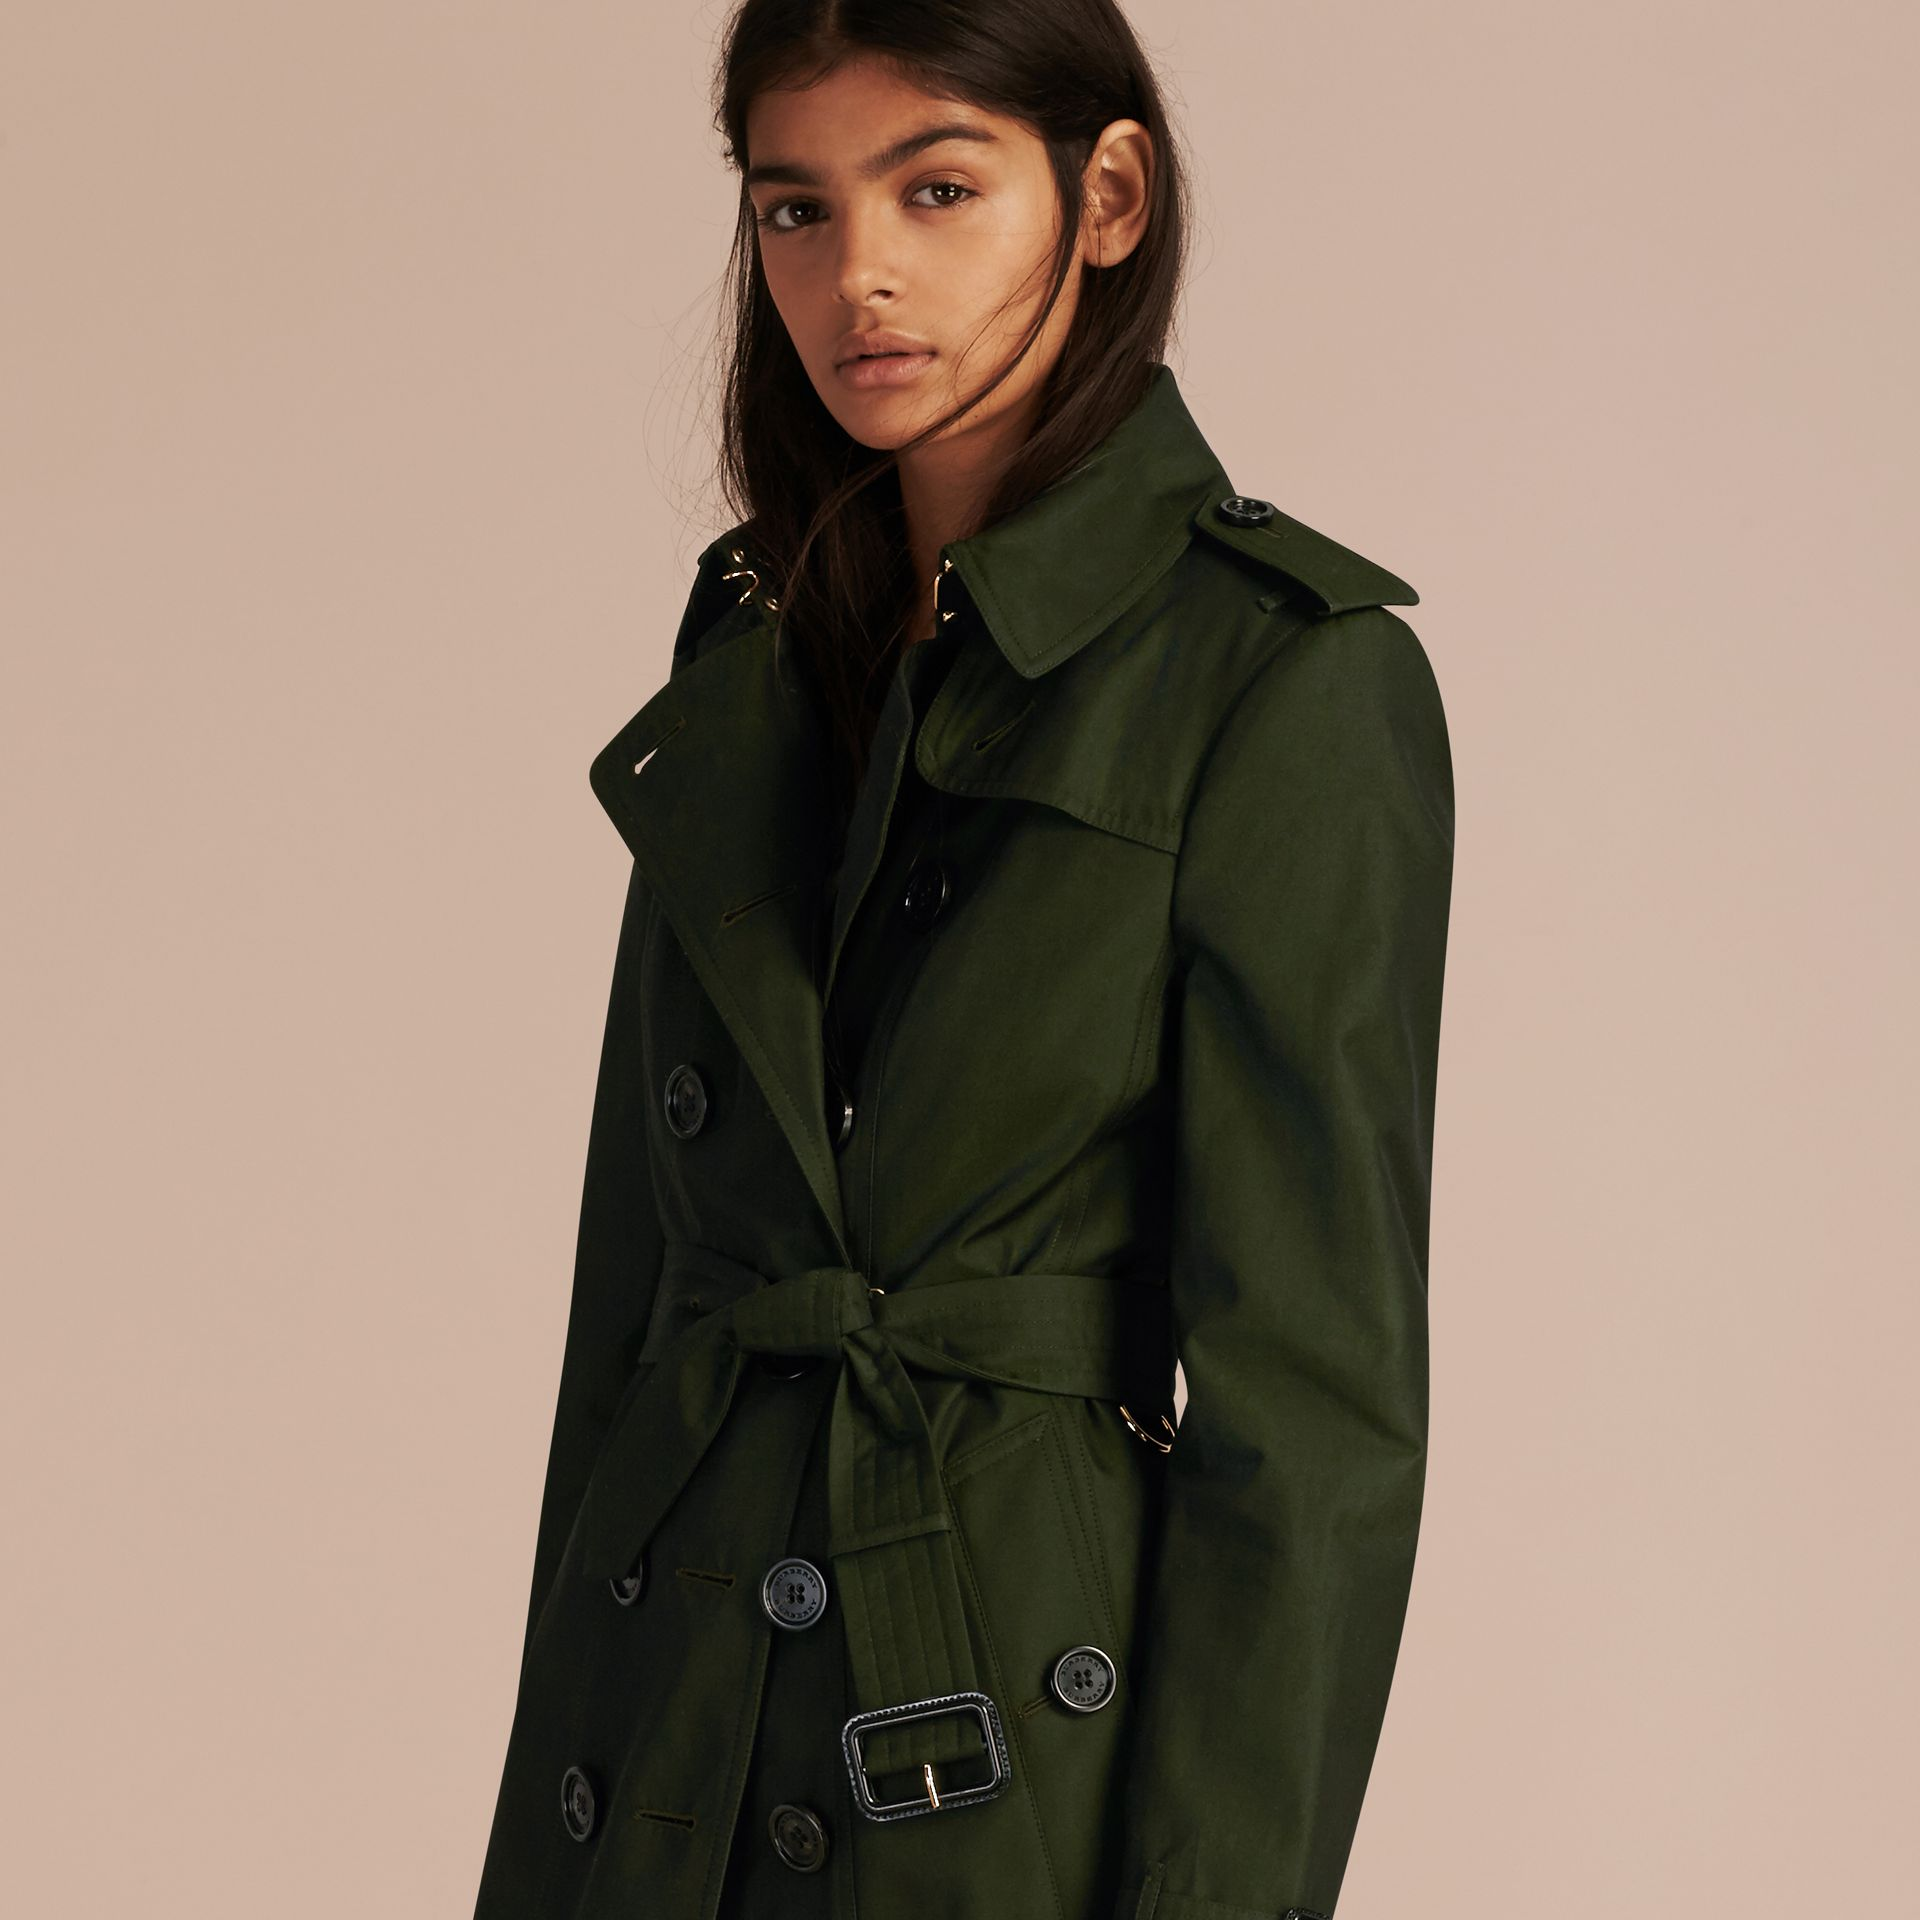 Dark cedar green Cotton Gabardine Trench Coat with Detachable Fur Trim Dark Cedar Green - gallery image 6